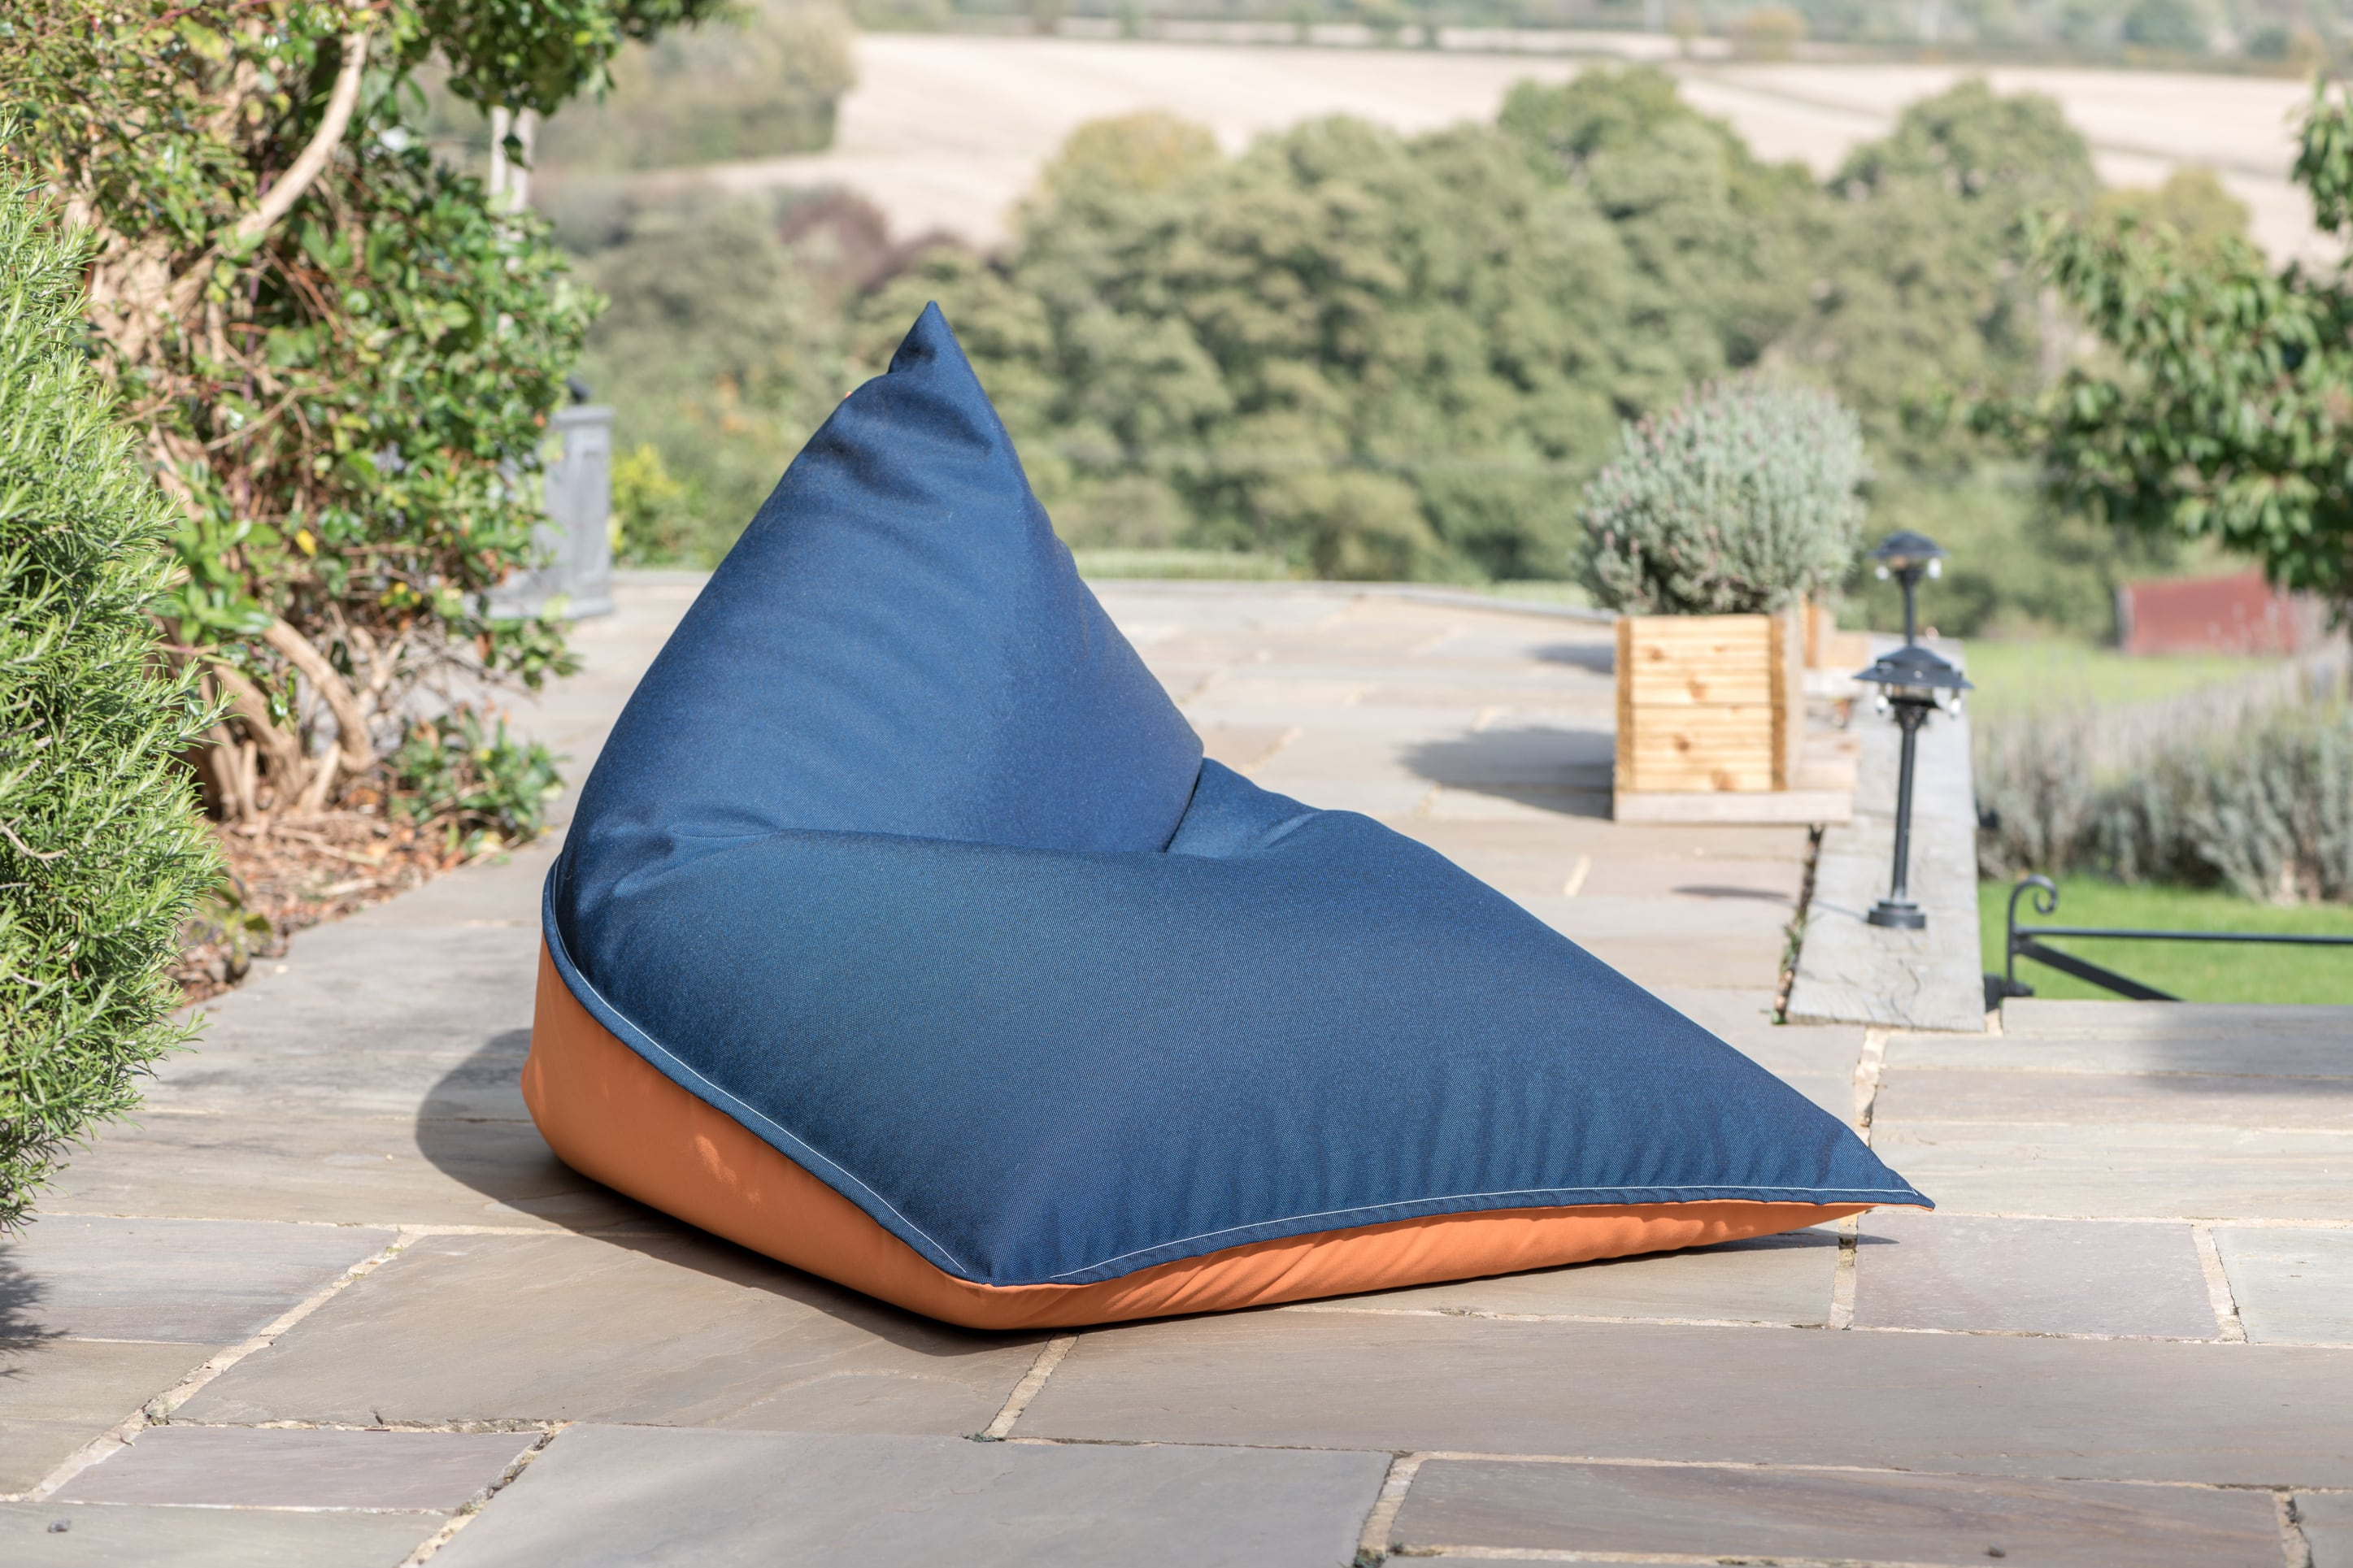 Armadillo Sun bean bag chair in orange and navy blue fabric outdoors